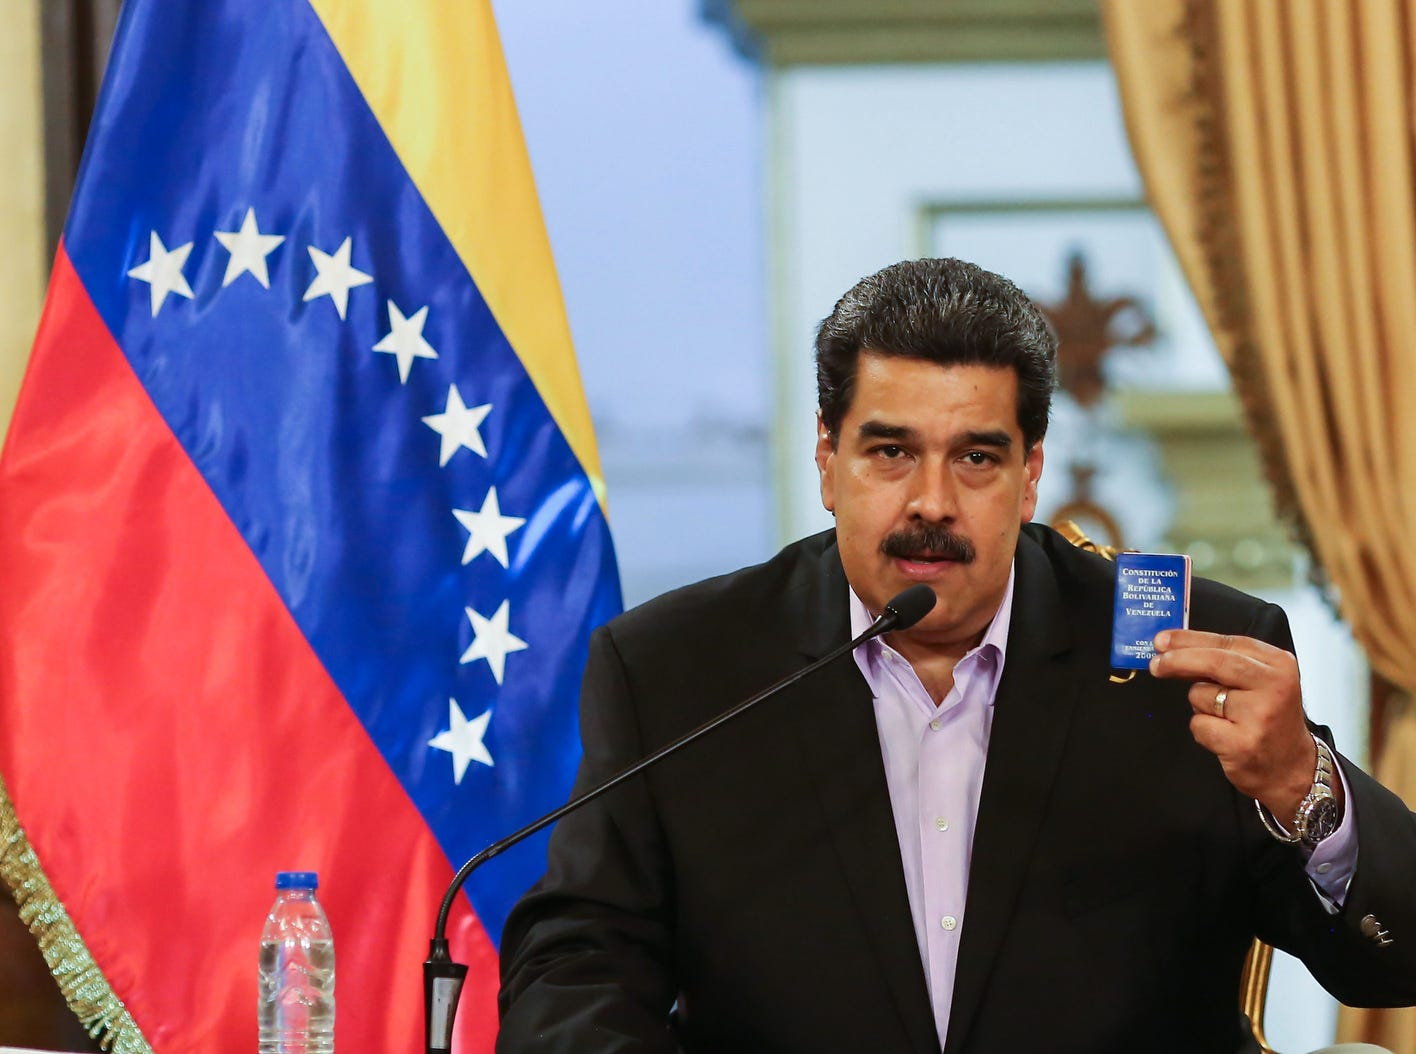 "Venezuelan President Nicolas Maduro talks during a meeting with Venezuelan diplomats returning from the US, at the Miraflores presidential palace in Caracas on Jan. 28, 2019.  On the 26th Maduro announced that the country began negotiations with the United States to open ""offices of interests"" to maintain a minimum level of relationship after breaking diplomatic ties."